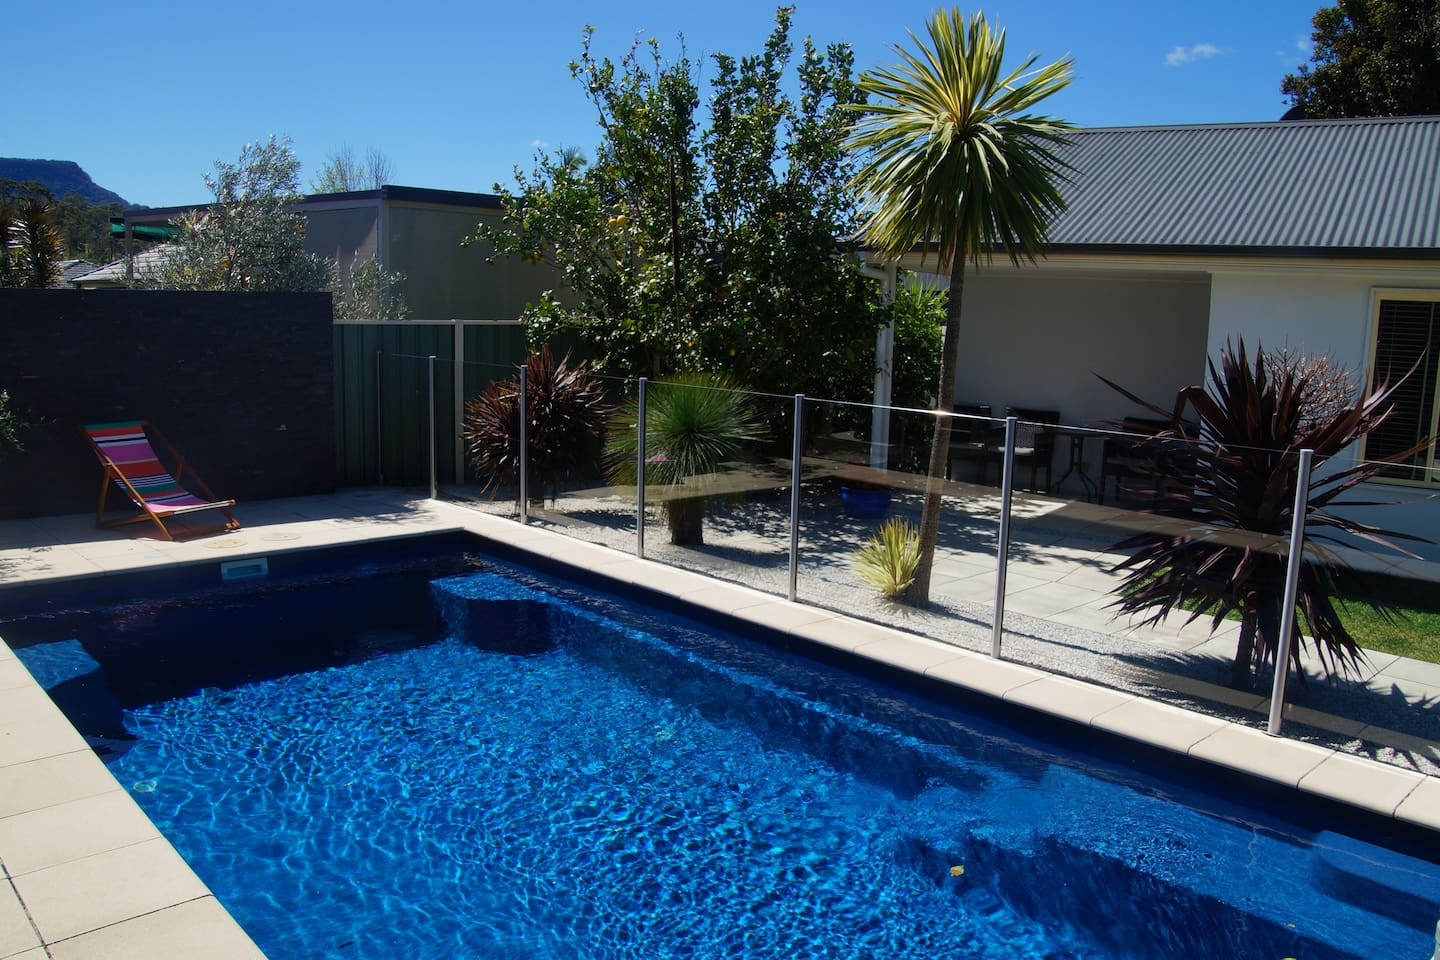 Pool with deck chairs & floats available to use.